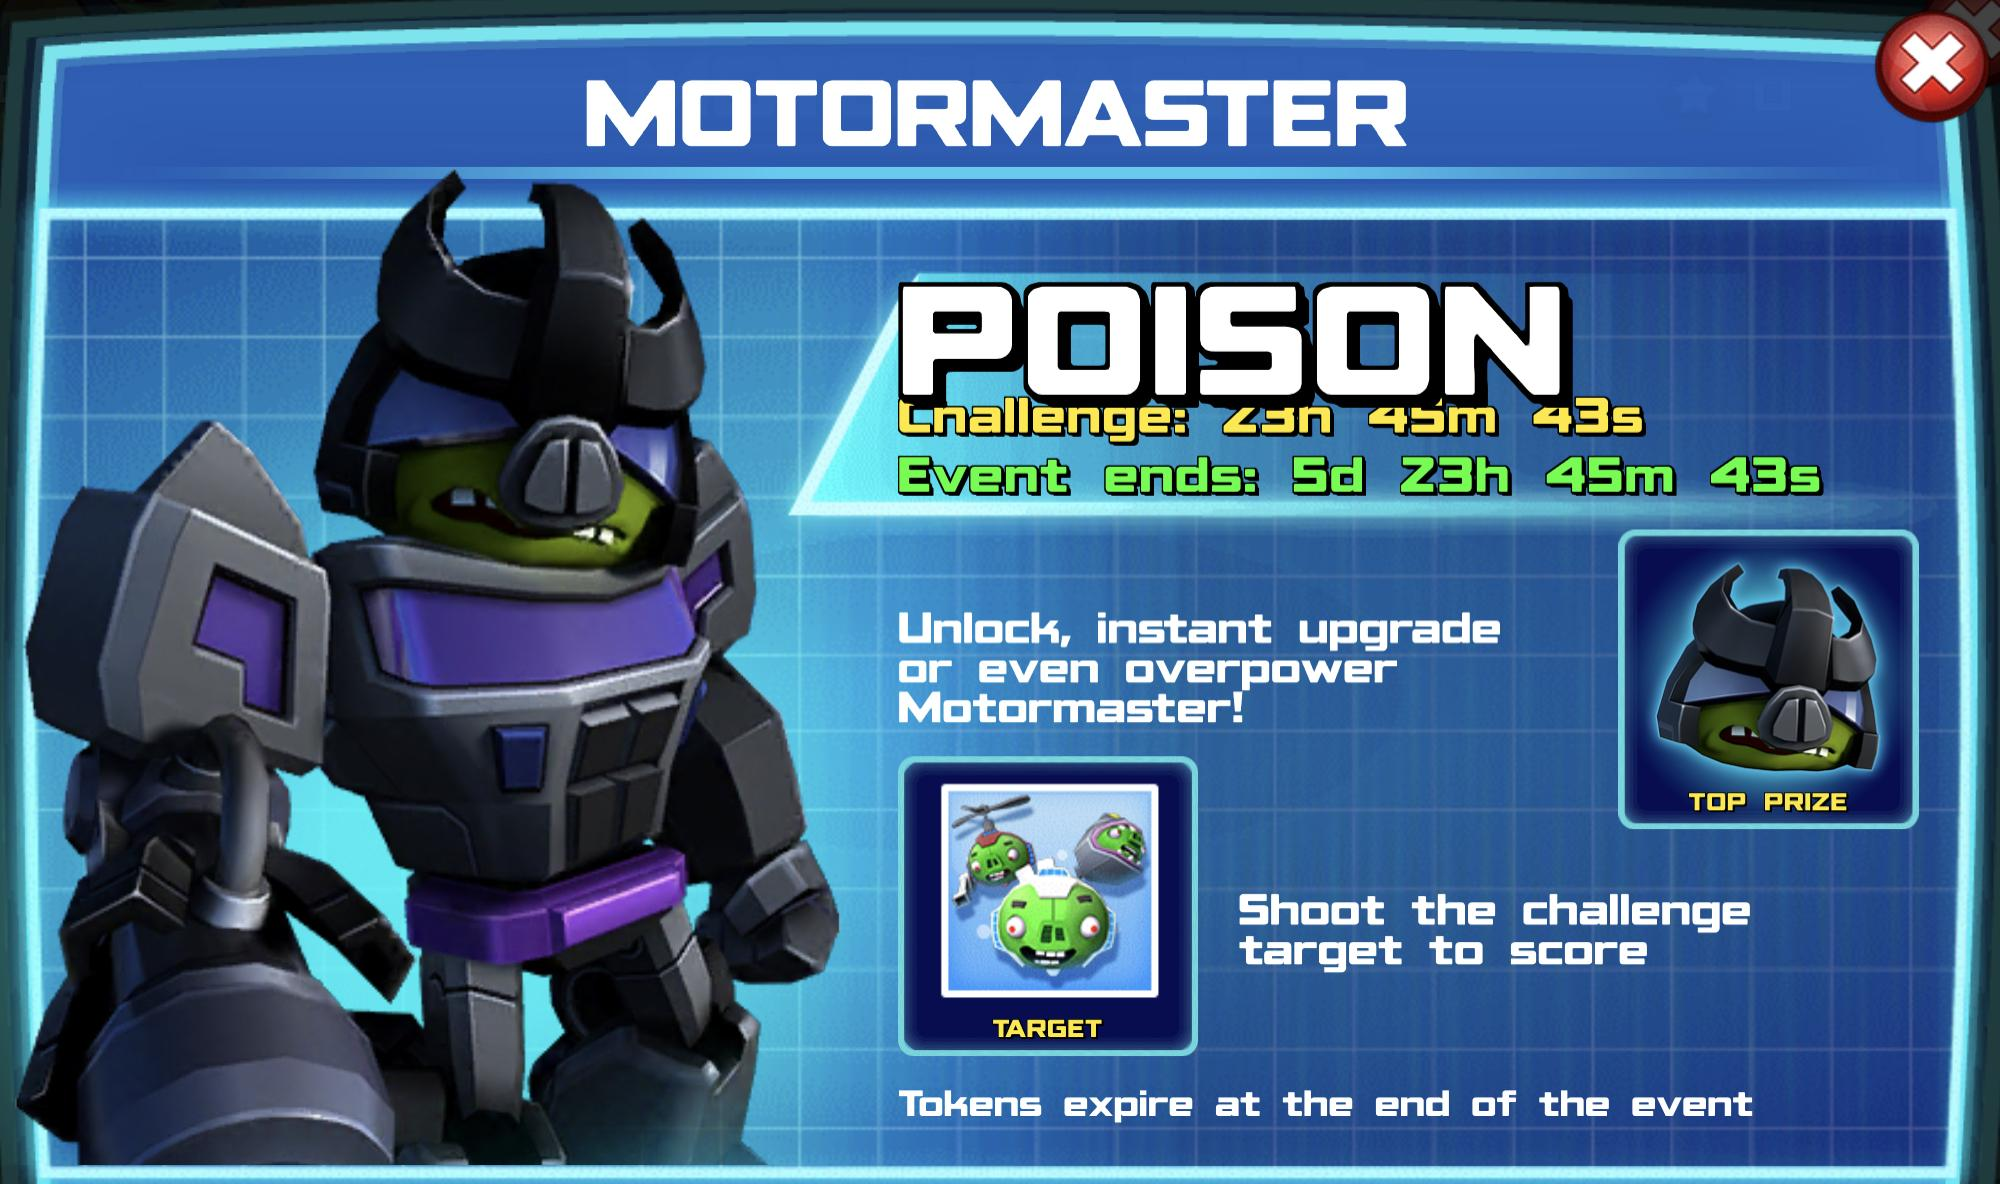 The event banner for Motormaster